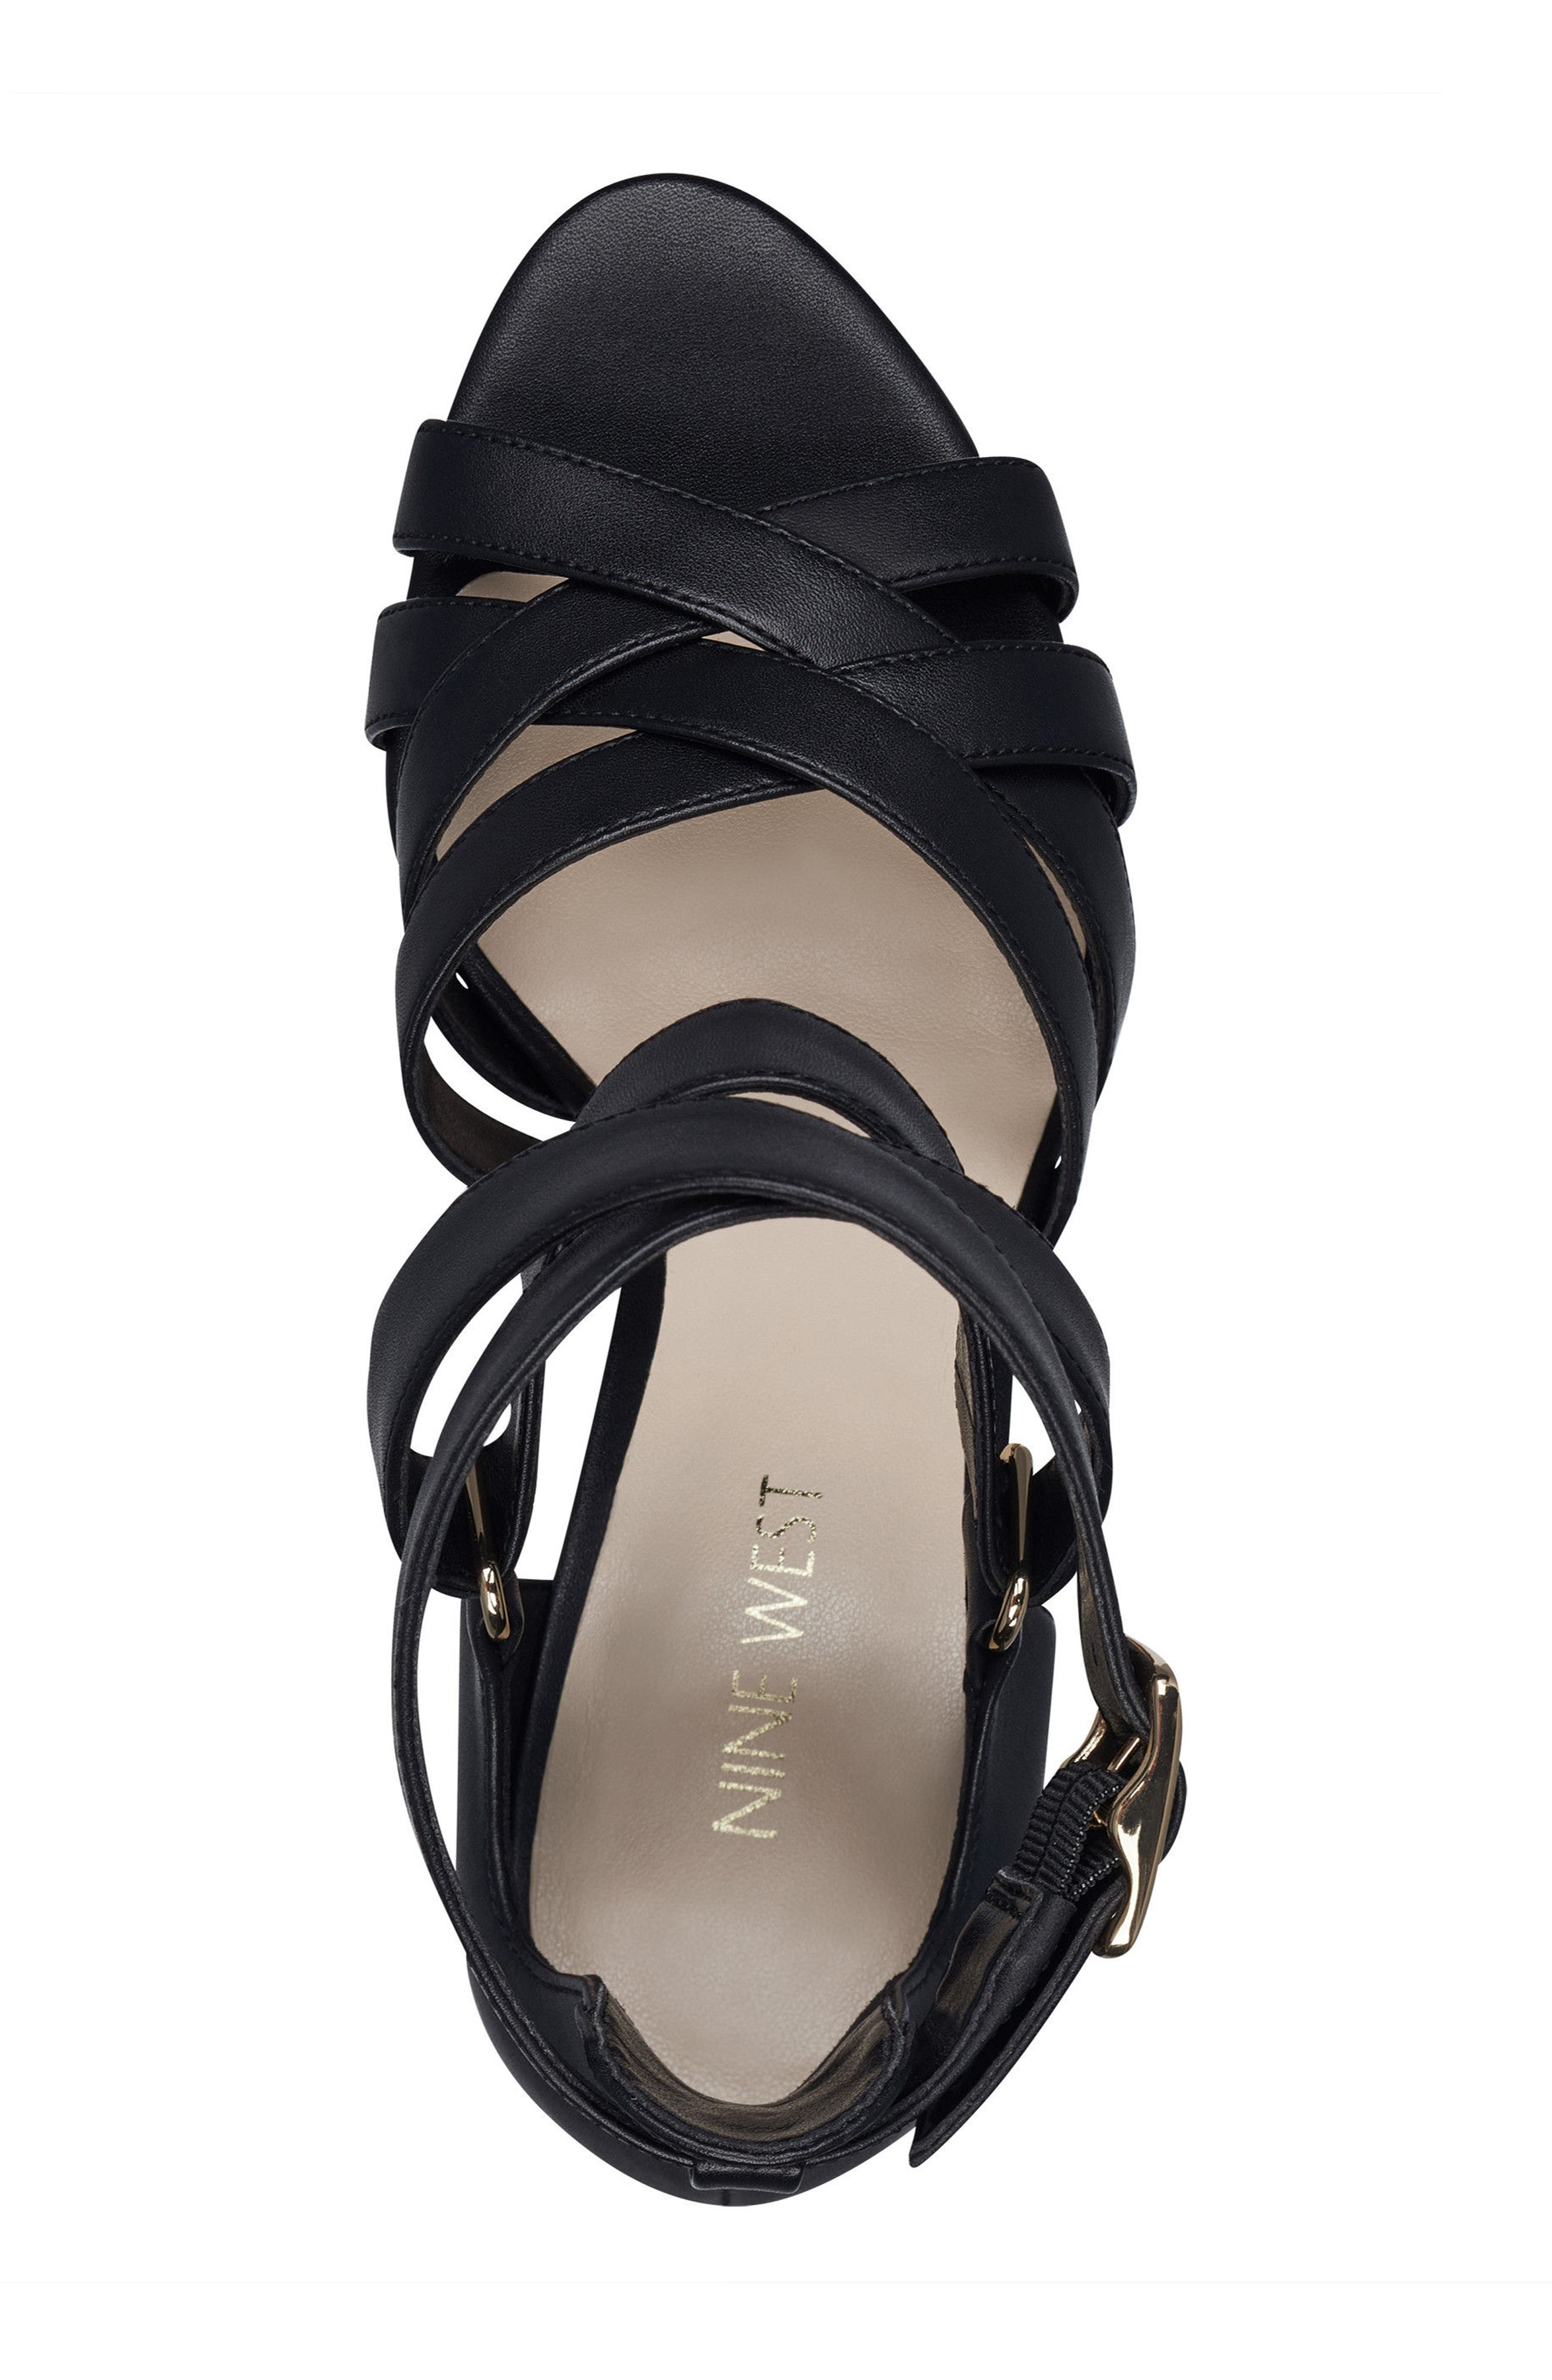 McGlynn Strappy Sandal,                             Alternate thumbnail 5, color,                             001